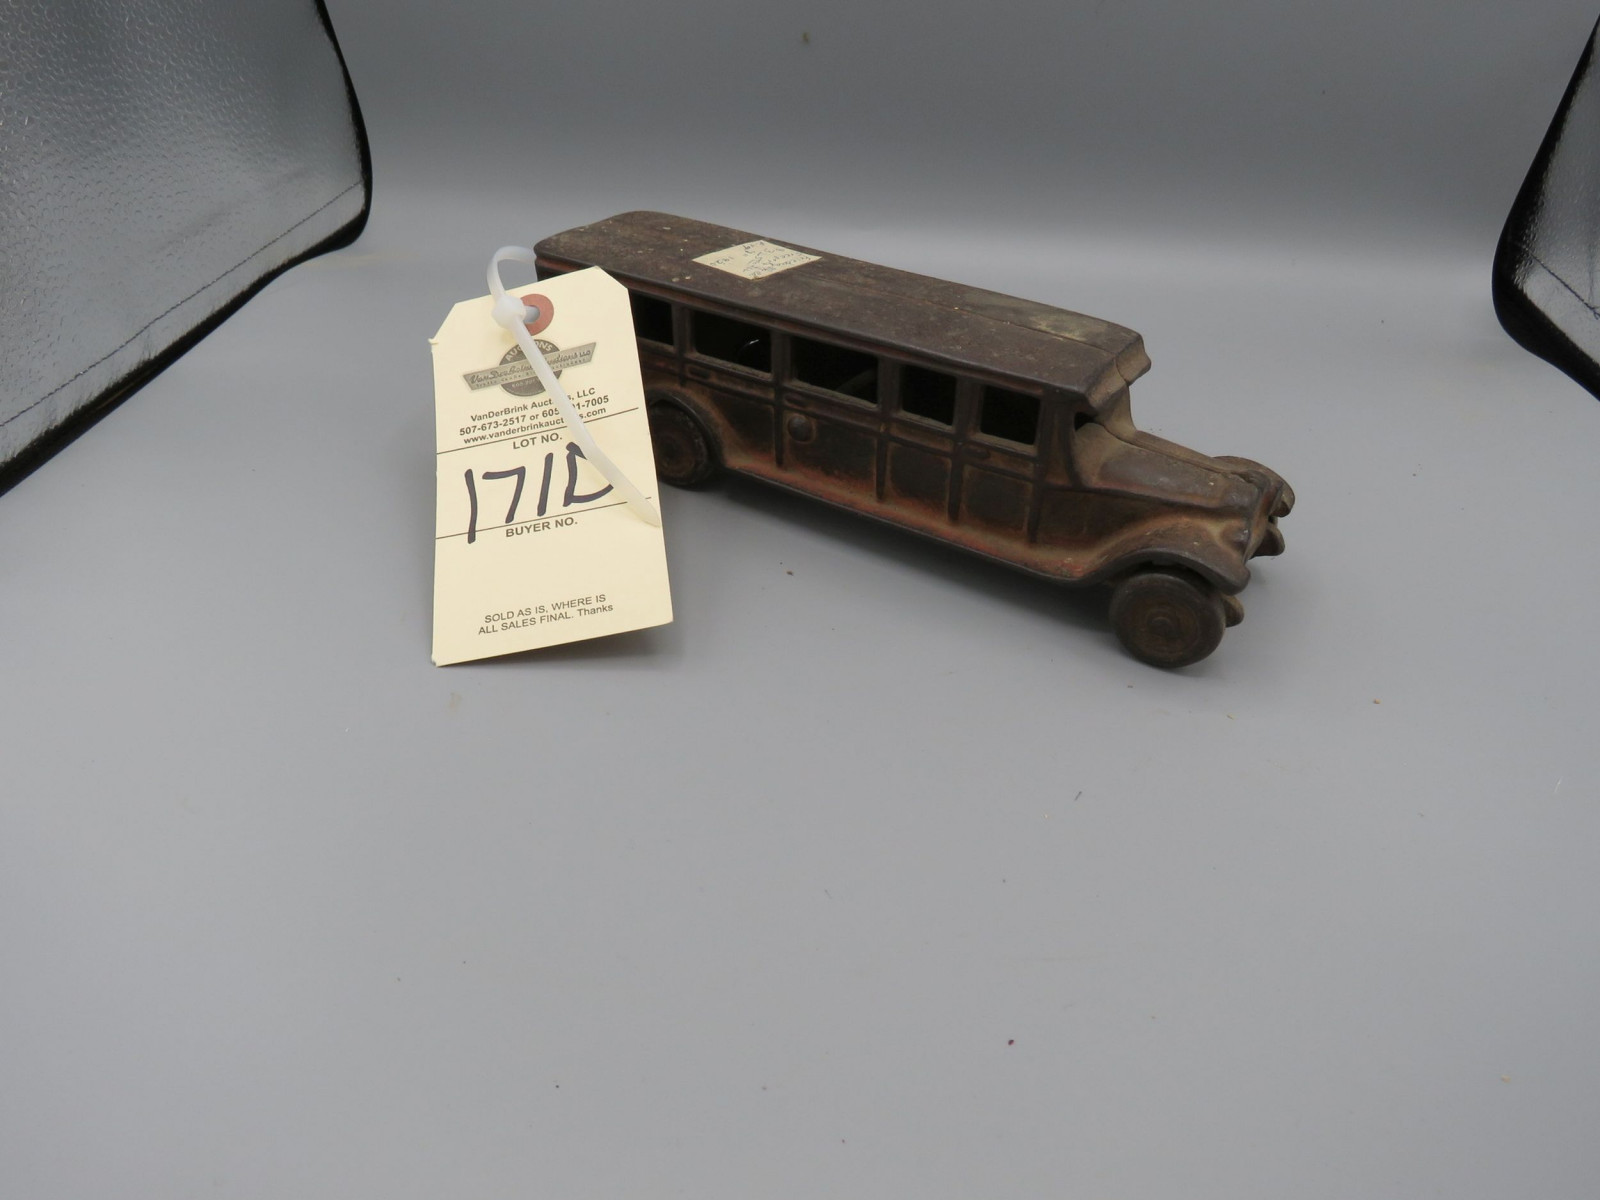 Friedag Manufacturing Company Cast Iron Bus @1920 Approx. 10 inches - Image 1